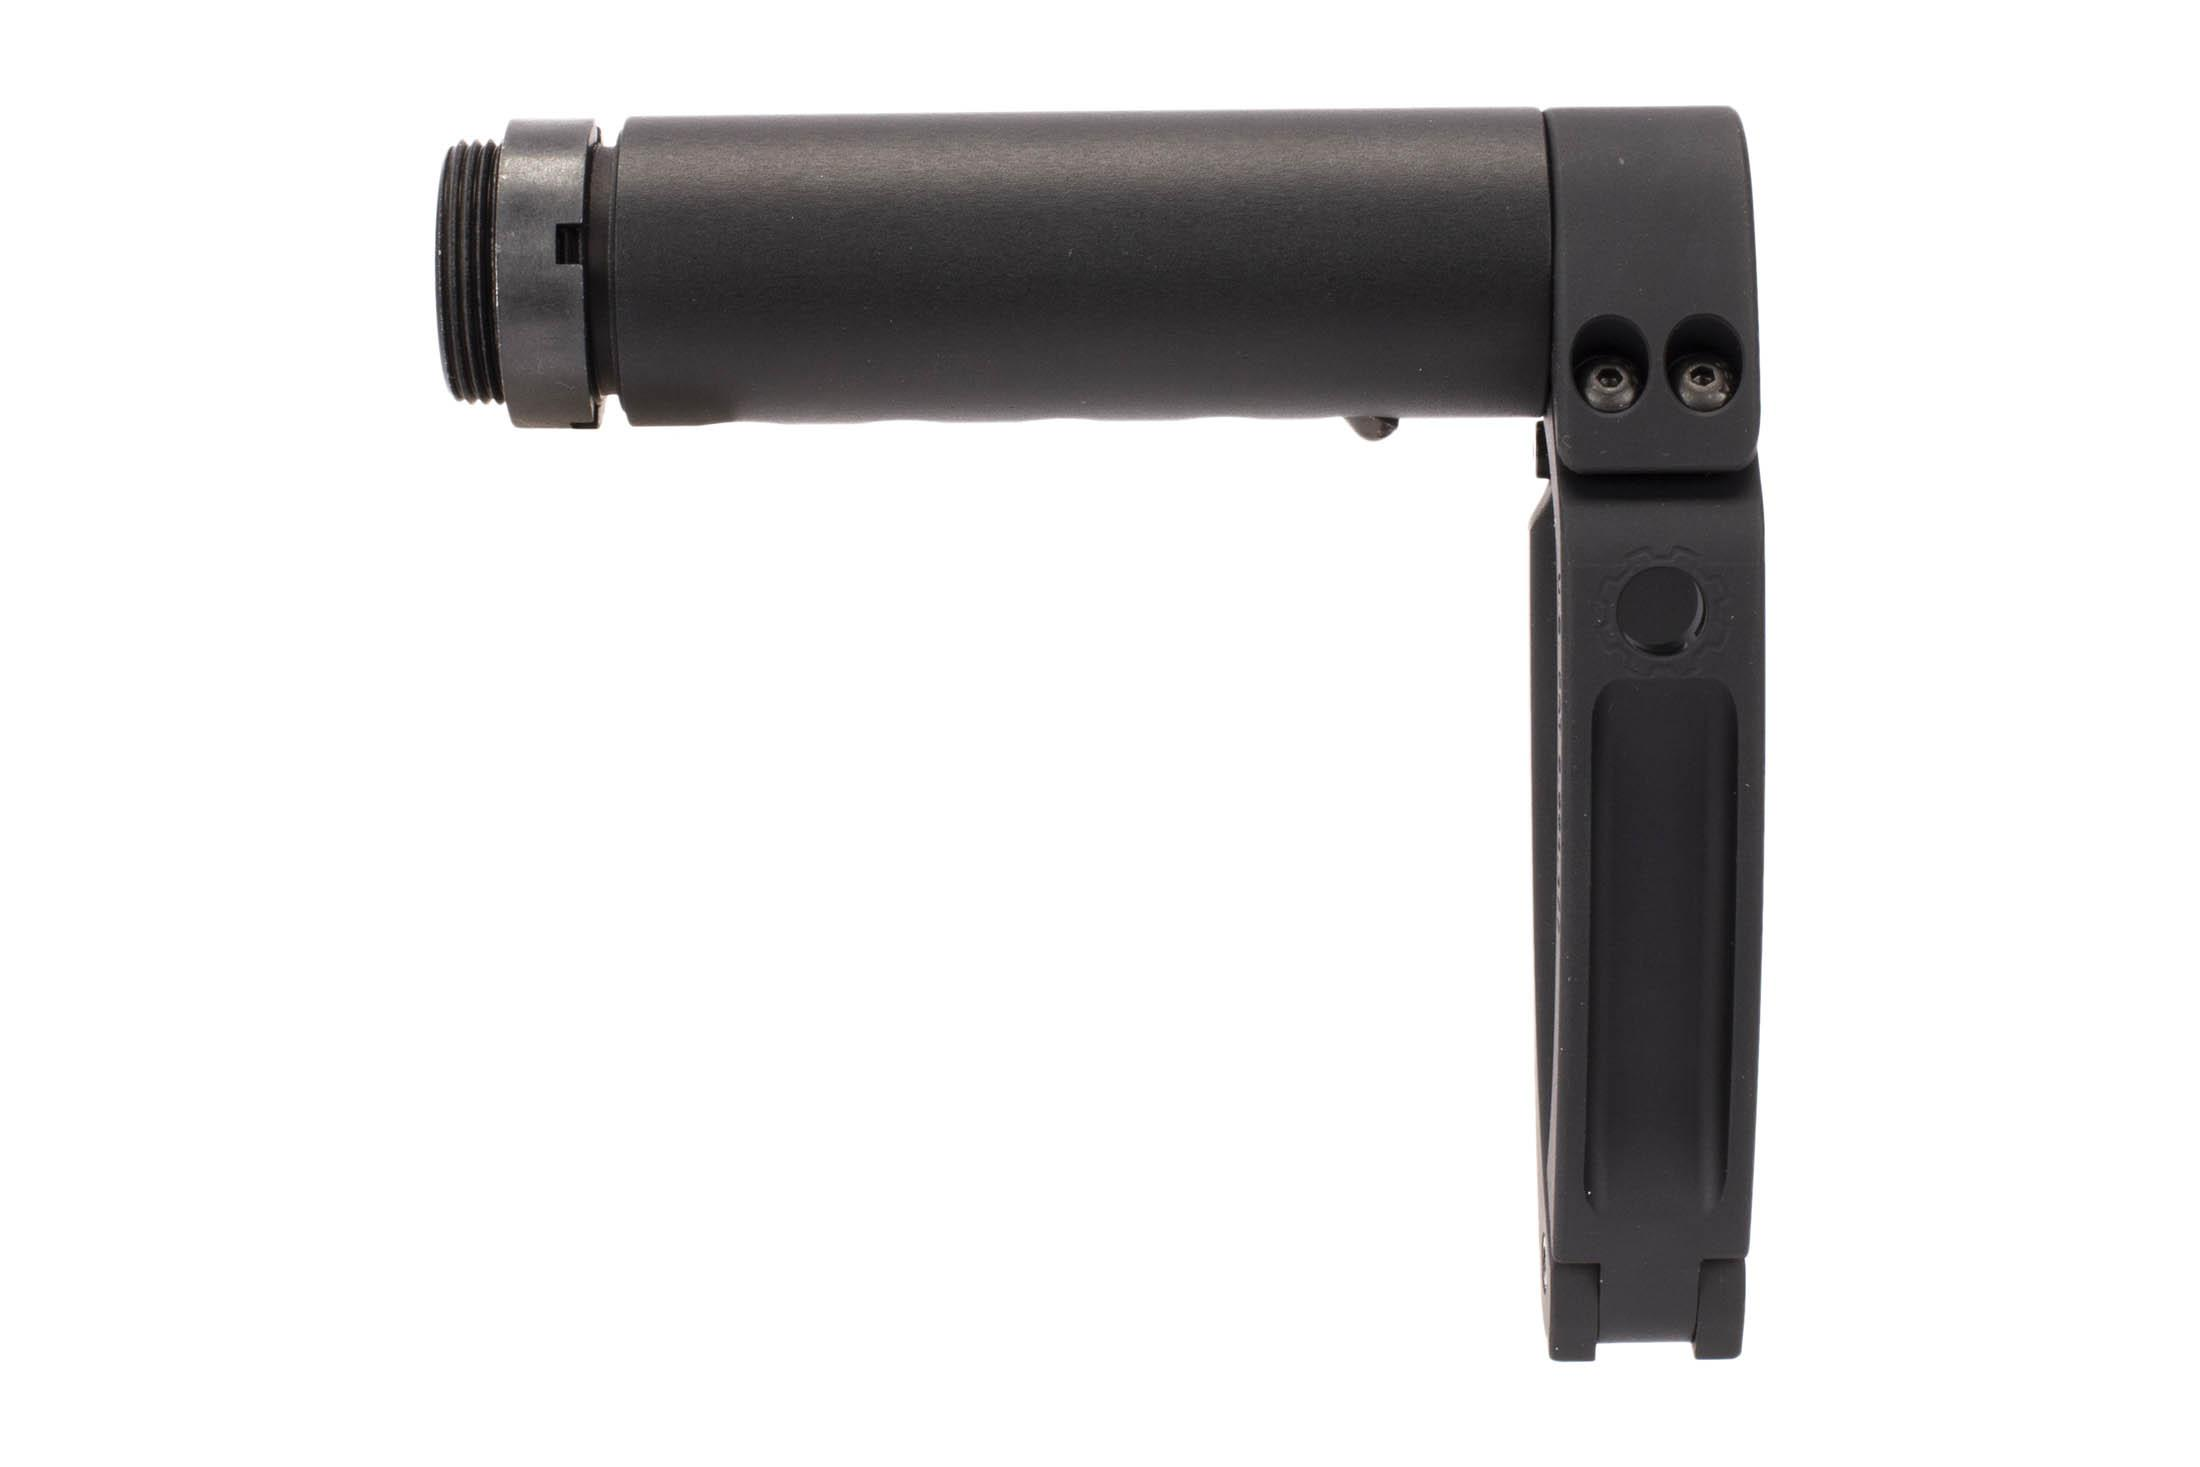 Dead Foot Arms G-REX Tailhook arm brace uses secure ball-detent adjustment for the ideal length